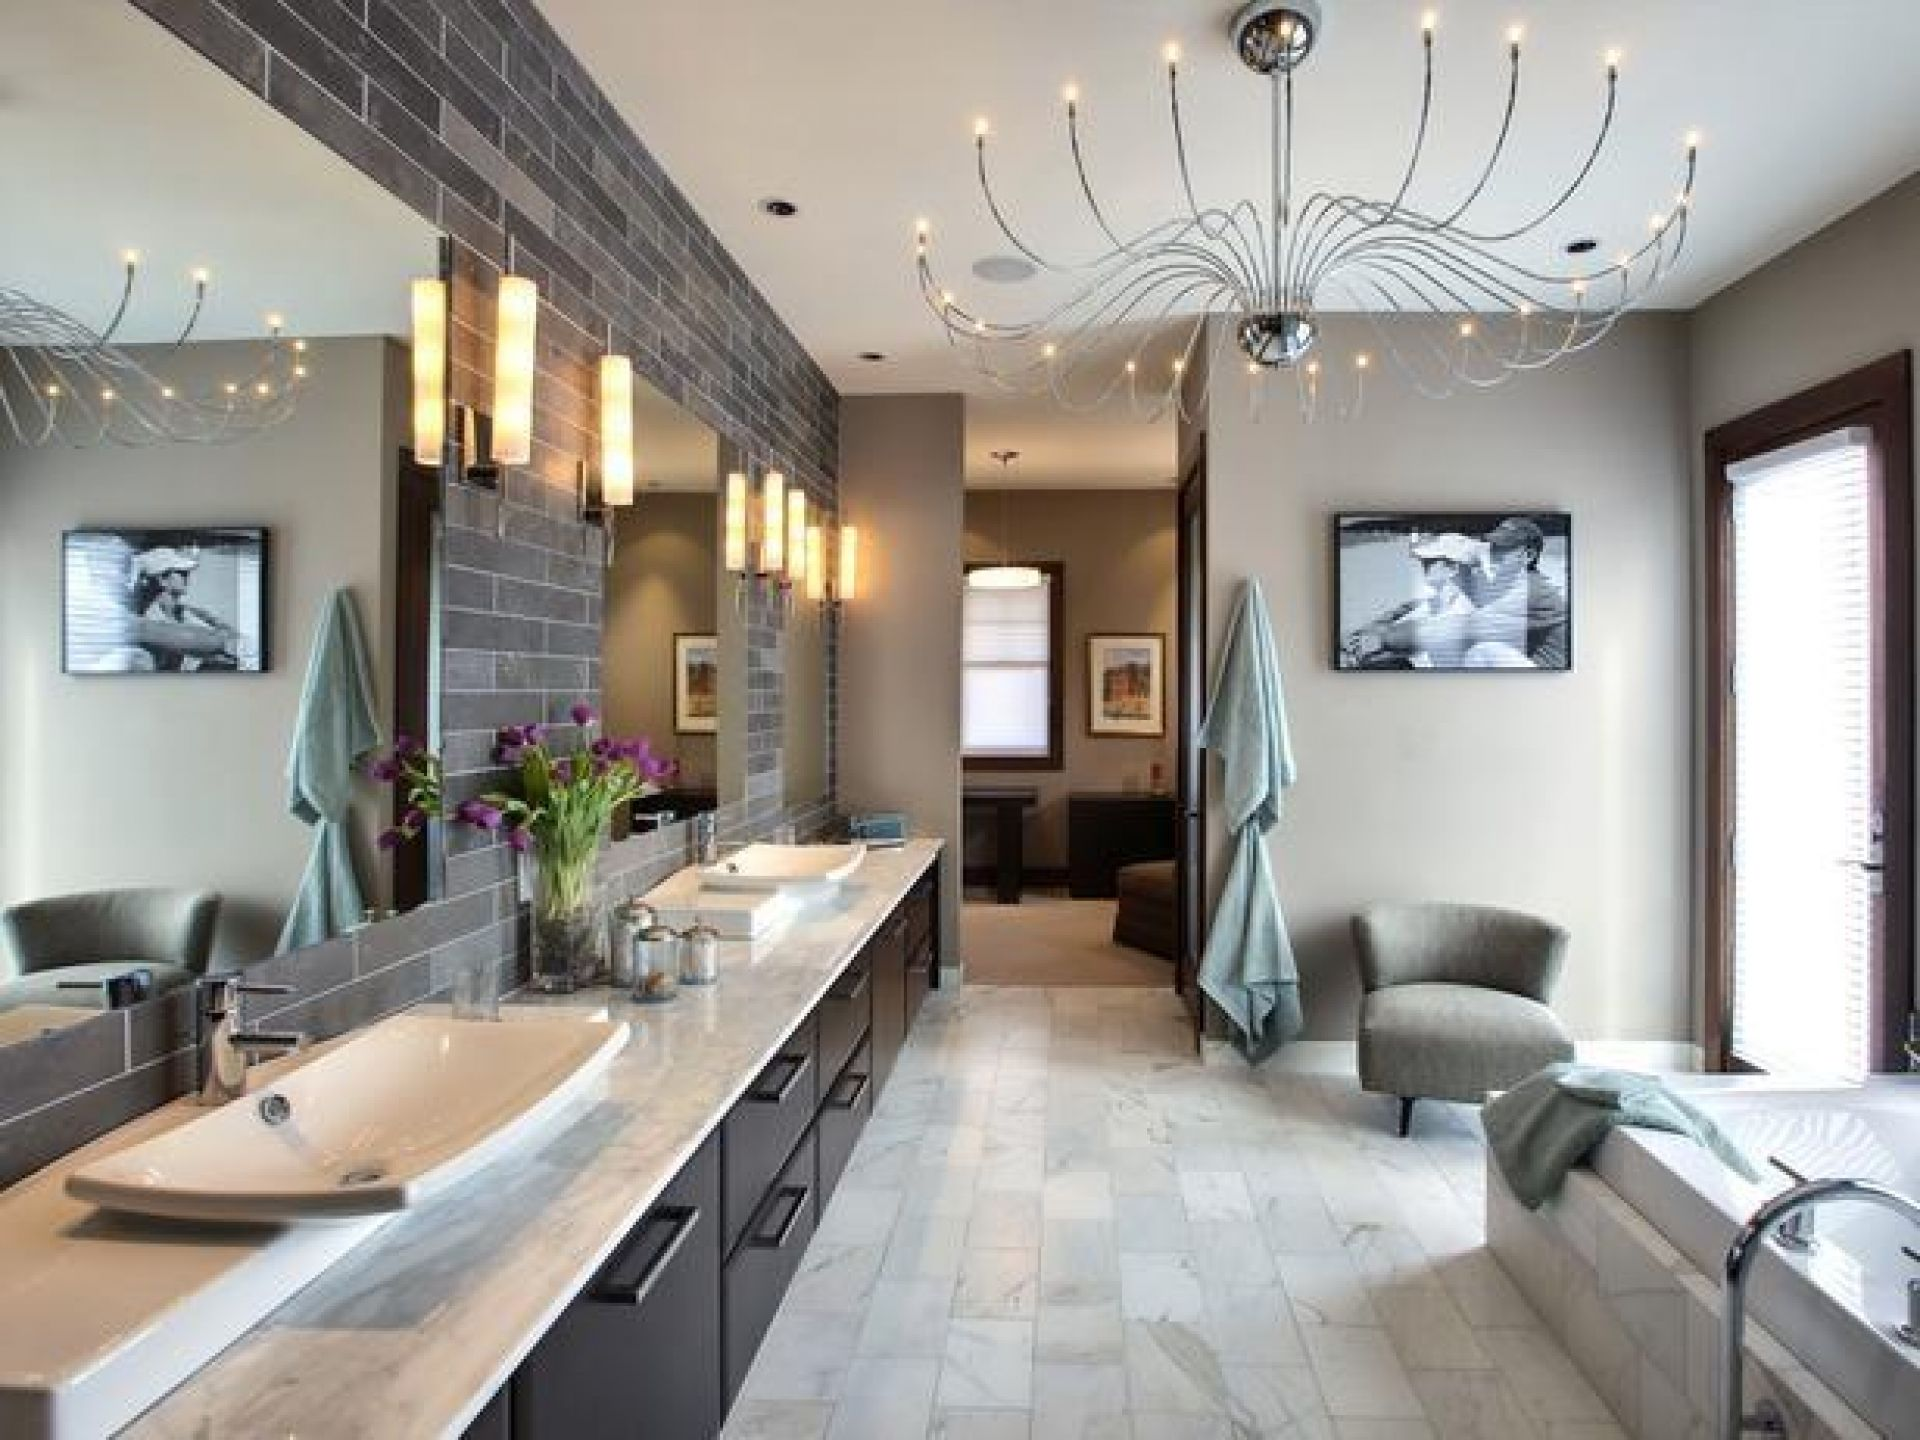 Luxury modern bathroom design with creative pendant light and large mirror as decoration ideas awesome dining room design with creative wall shelves and